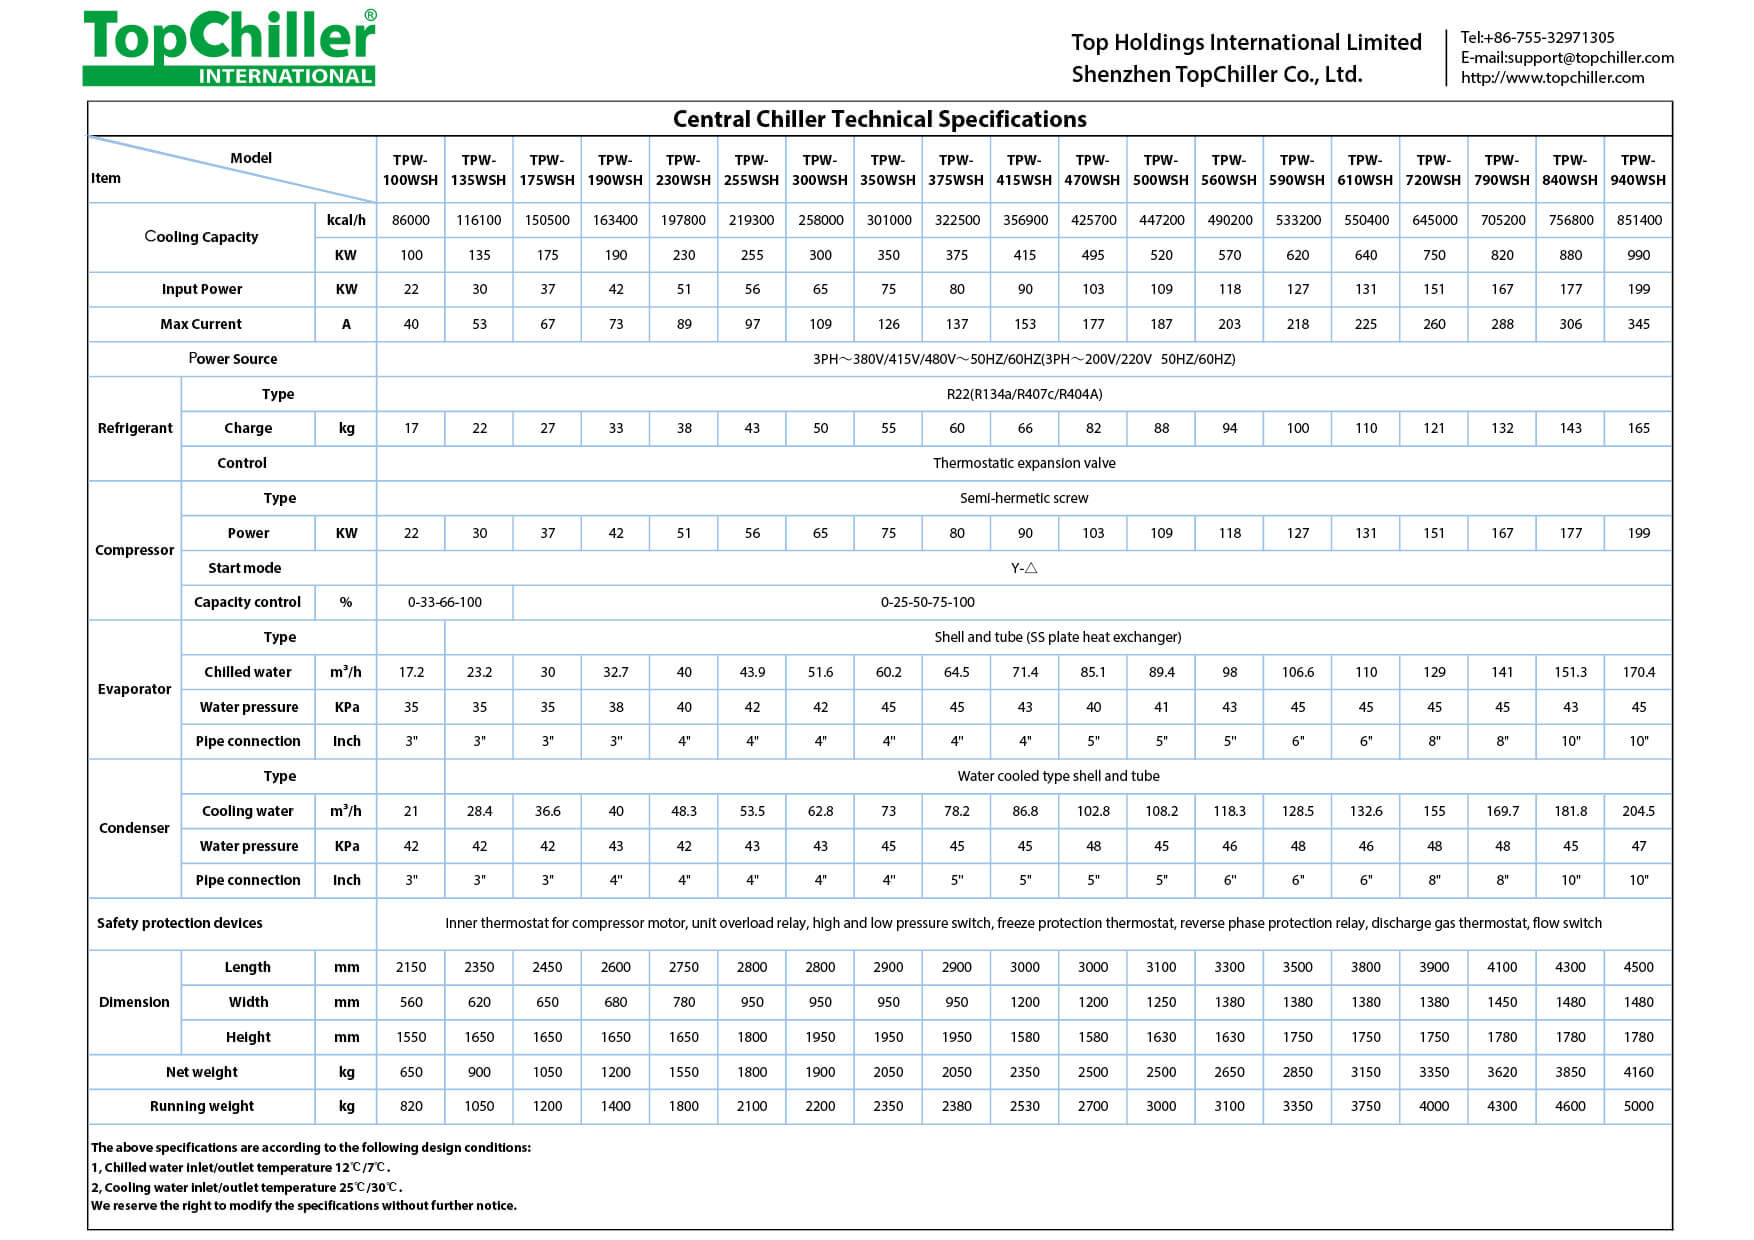 Central Chiller Technical Specifications